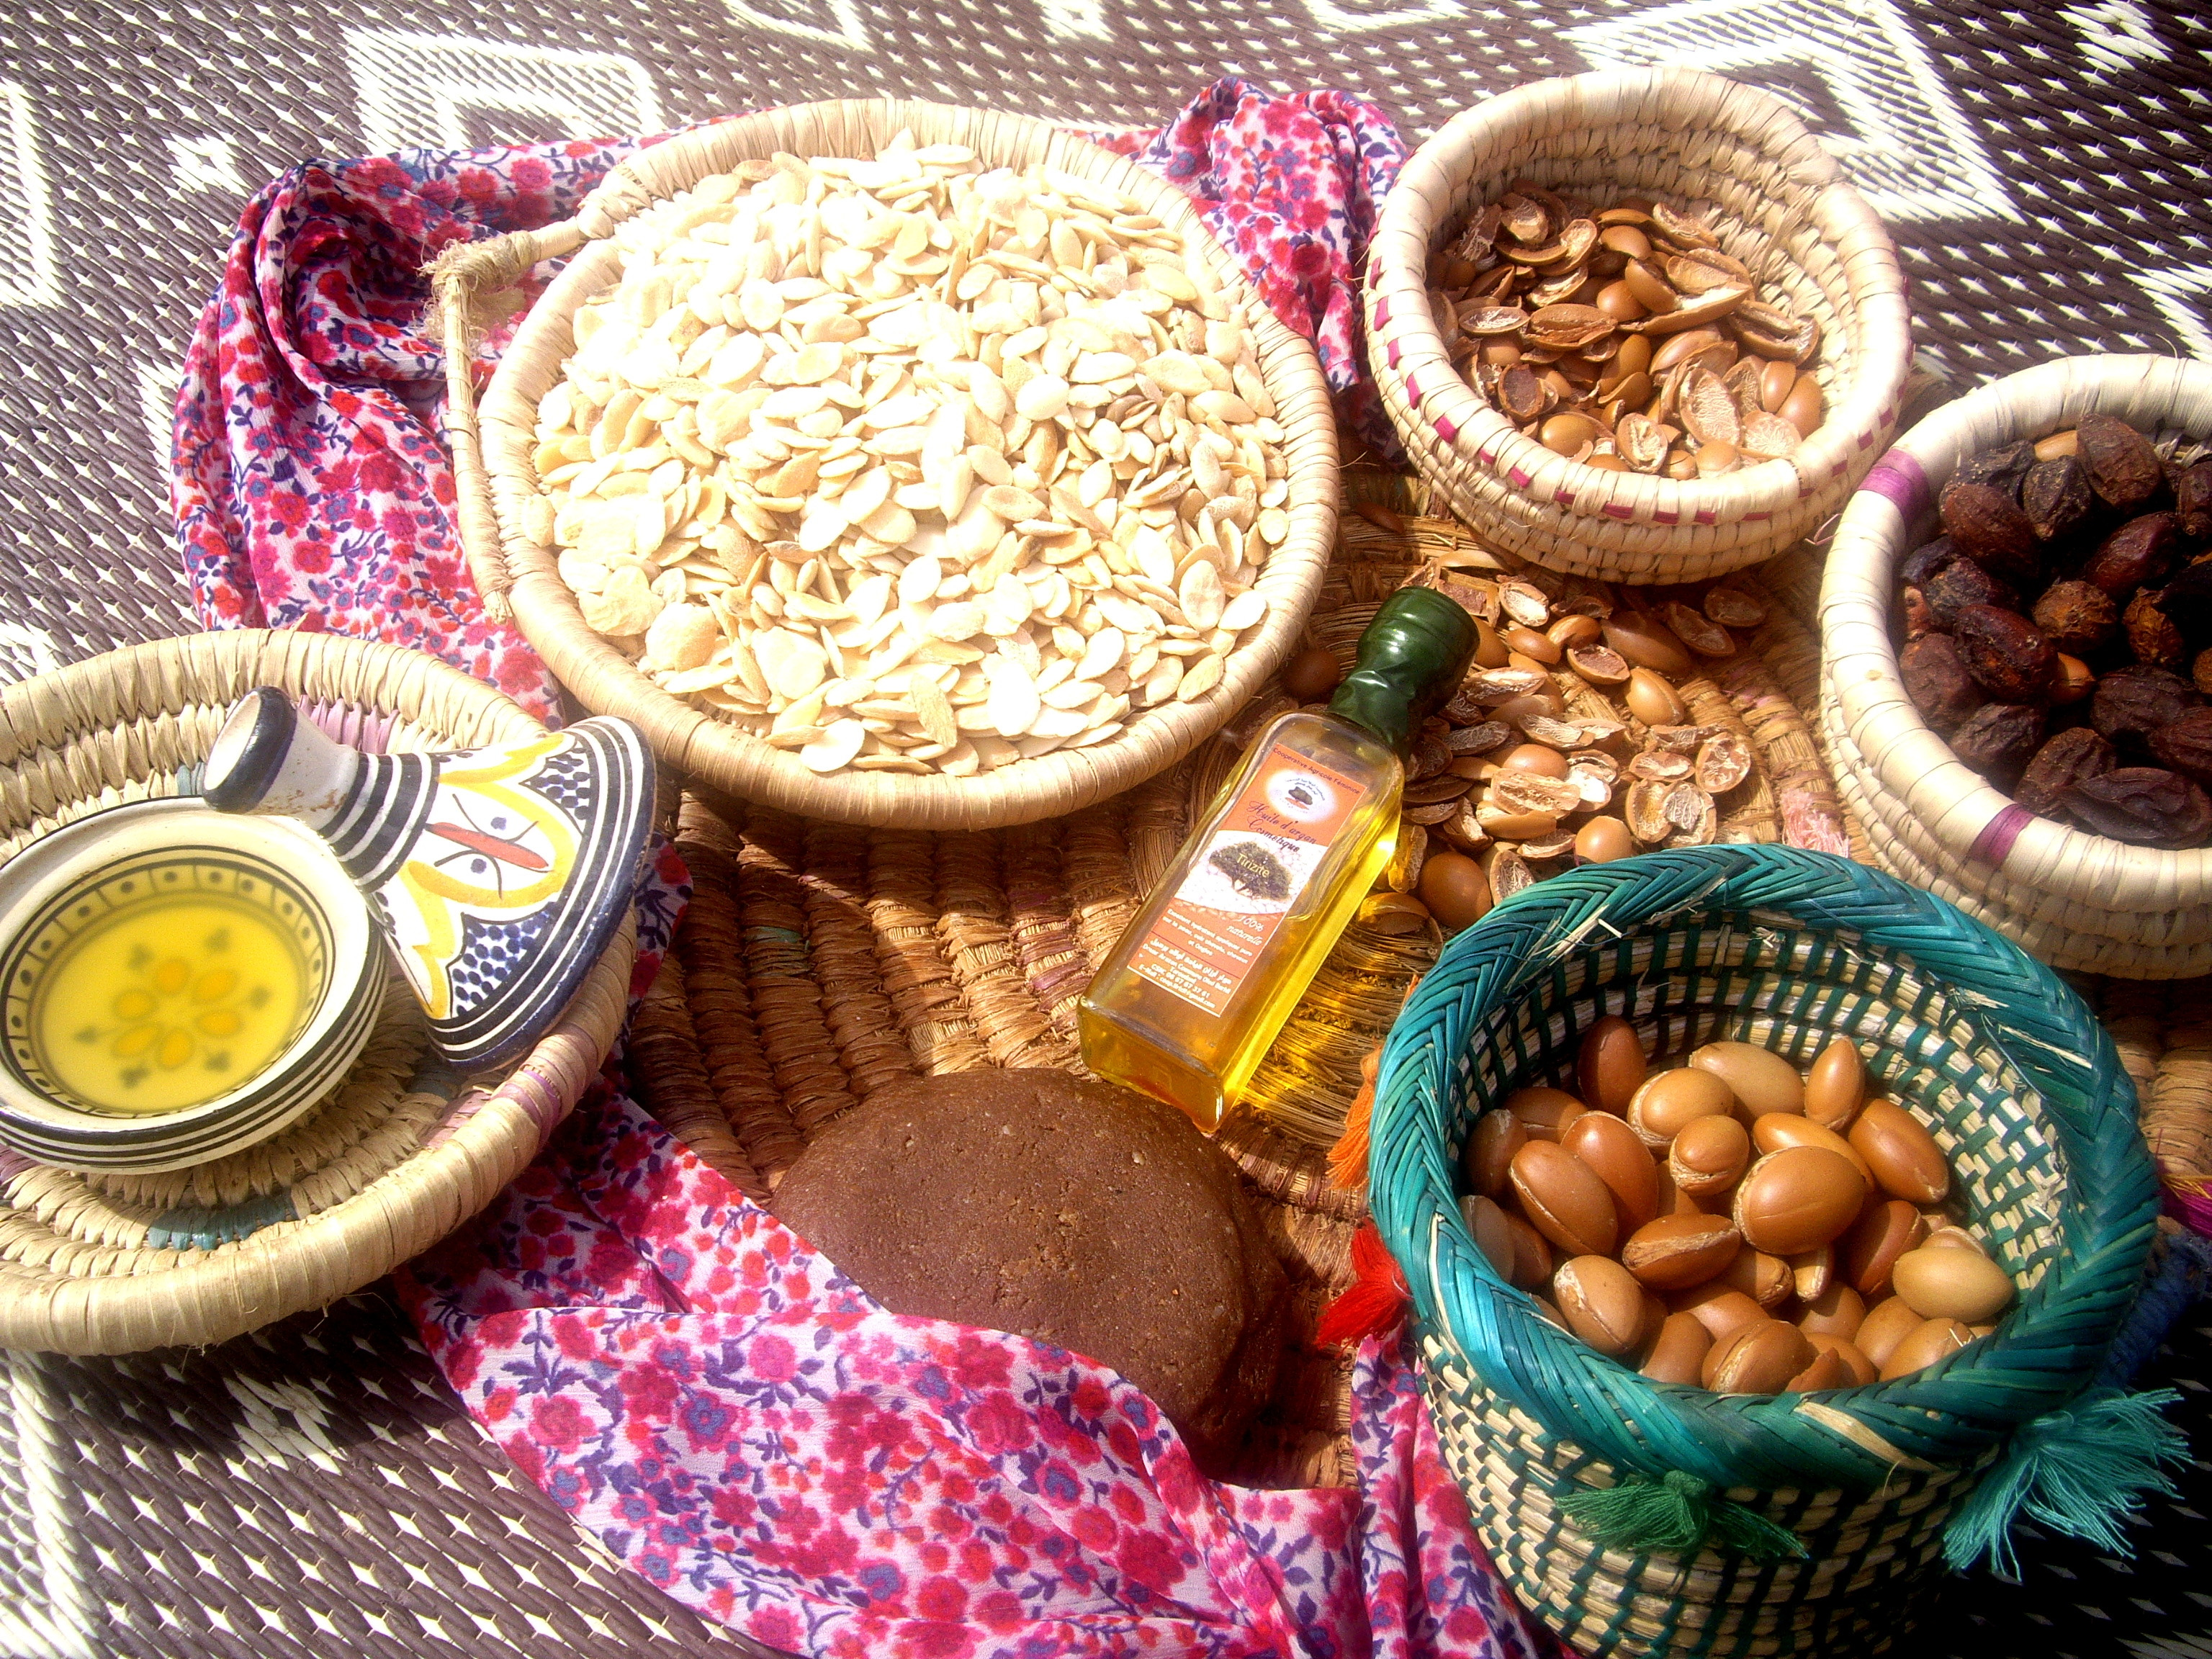 From nuts, kernels to Argan oil. At women cooperative in Arazane